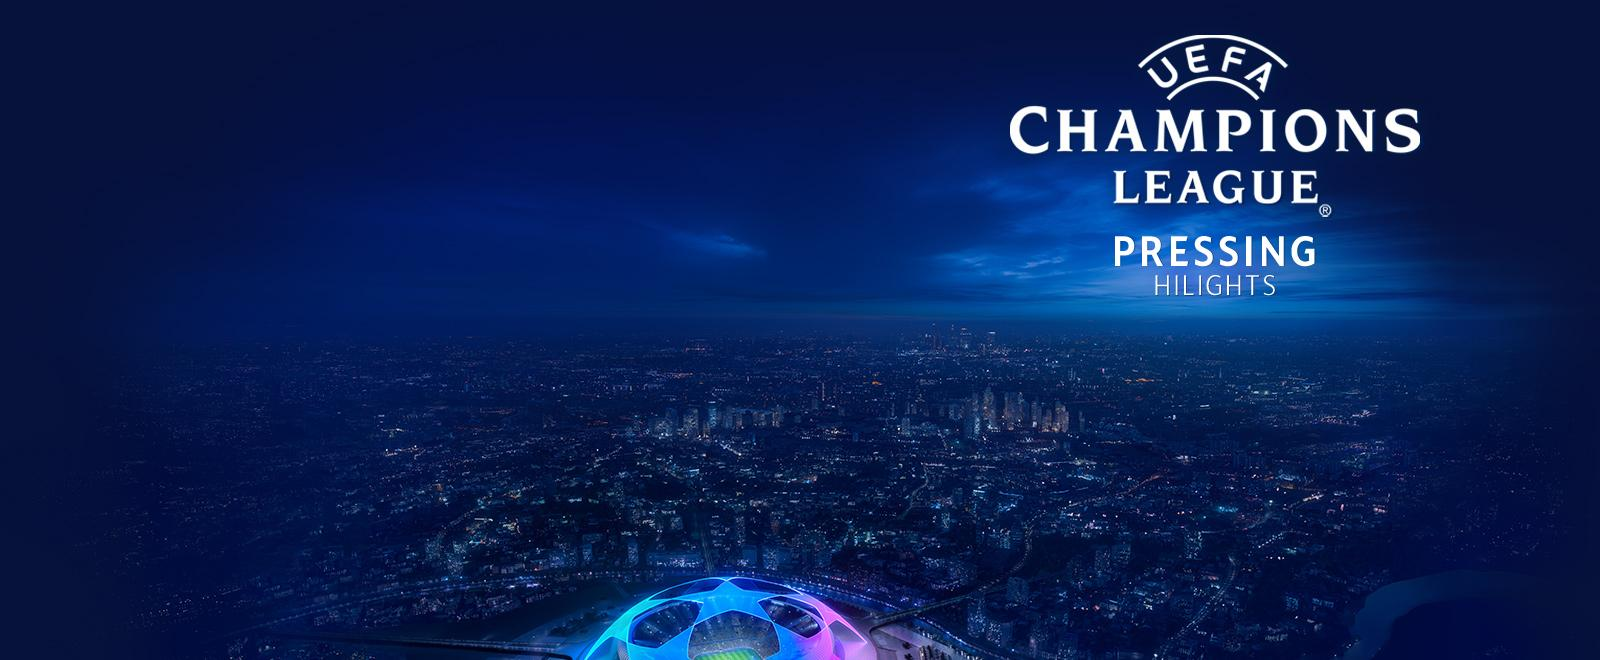 Highlights champions league